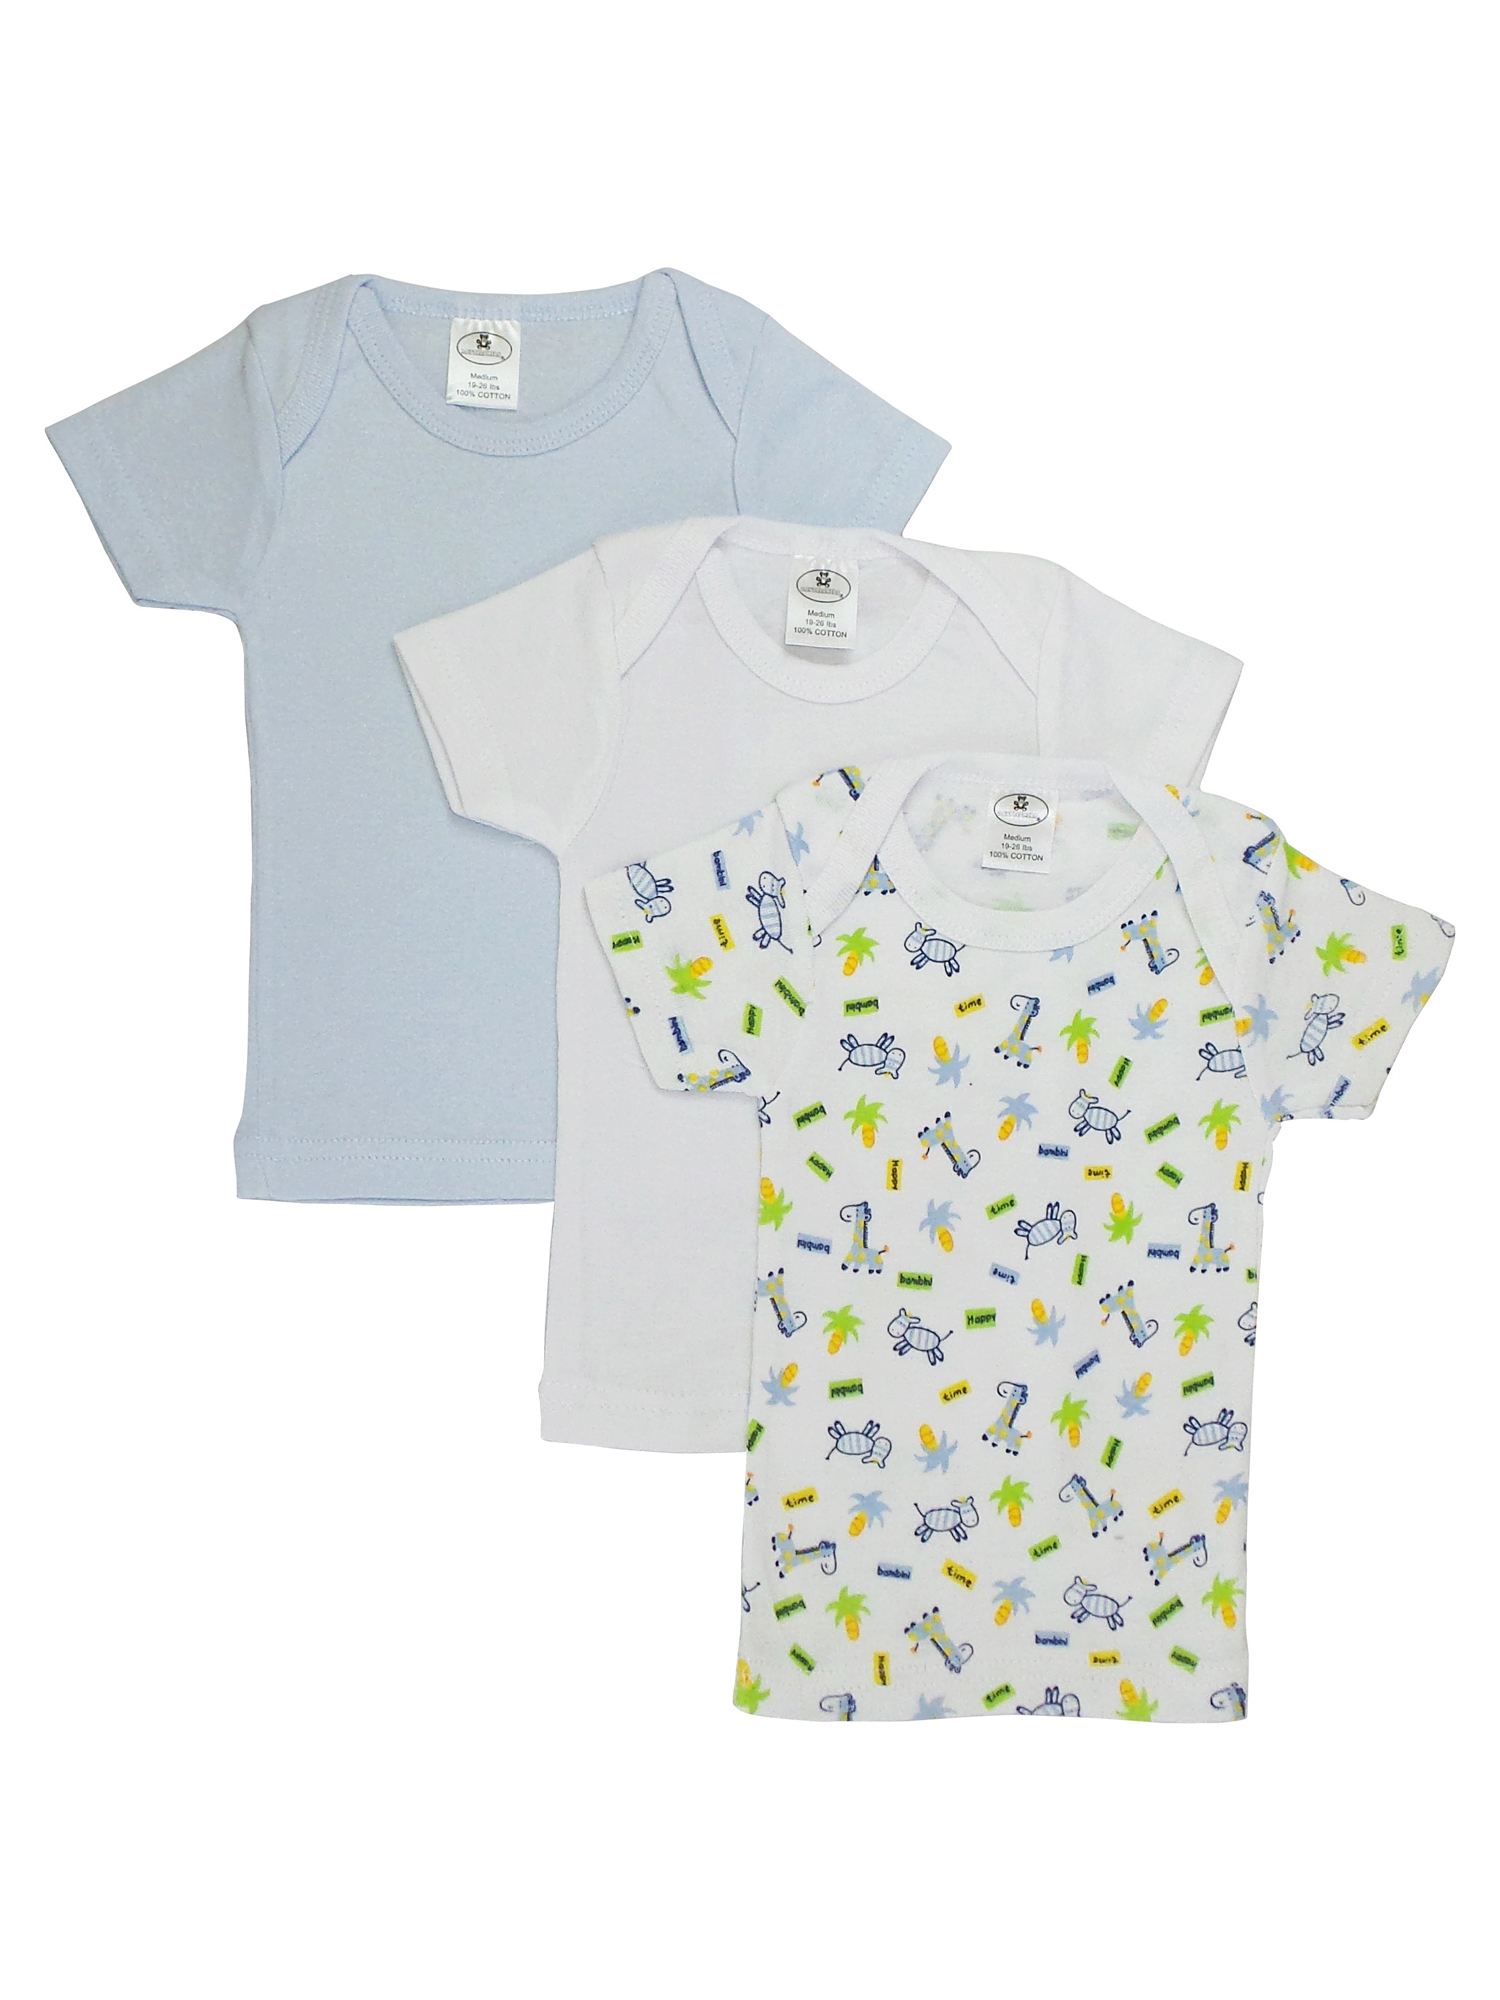 942fbeaaf Boys' Print Variety Short Sleeve Lap T-Shirt, made with 100% rib knit  cotton, is a great variety pack to have in the spring and summer months.